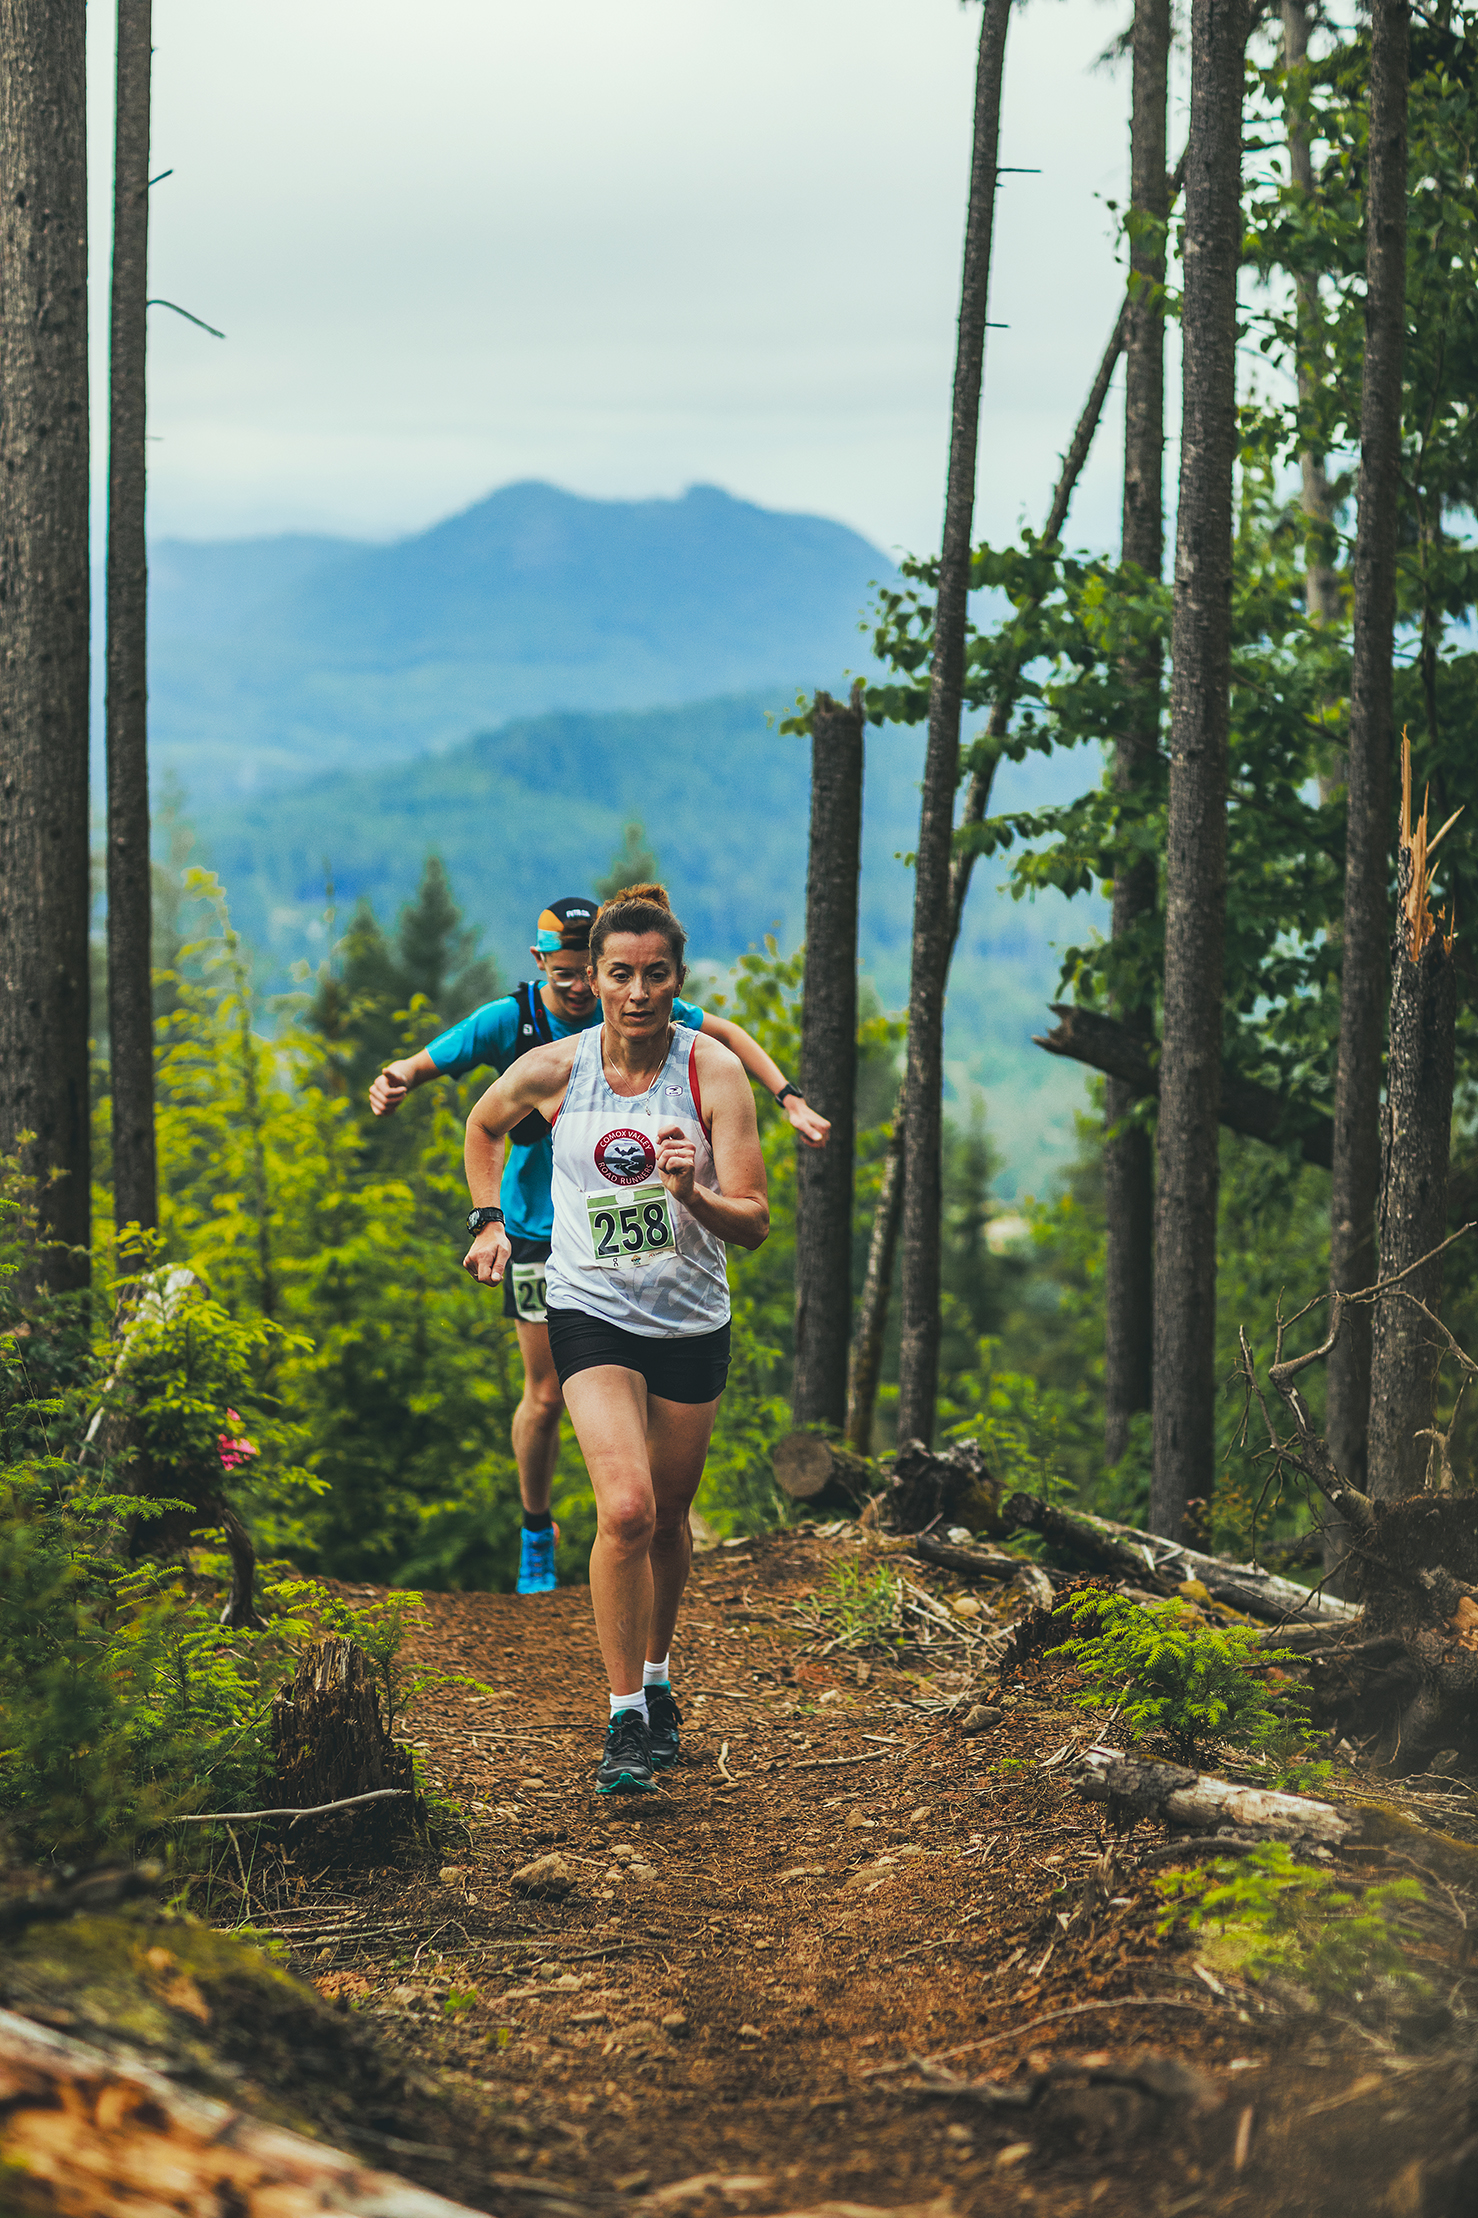 Fraser Valley Trail Races - Bear Mountain - IMG_1662 by Brice Ferre Studio - Vancouver Portrait Adventure and Athlete Photographer.jpg